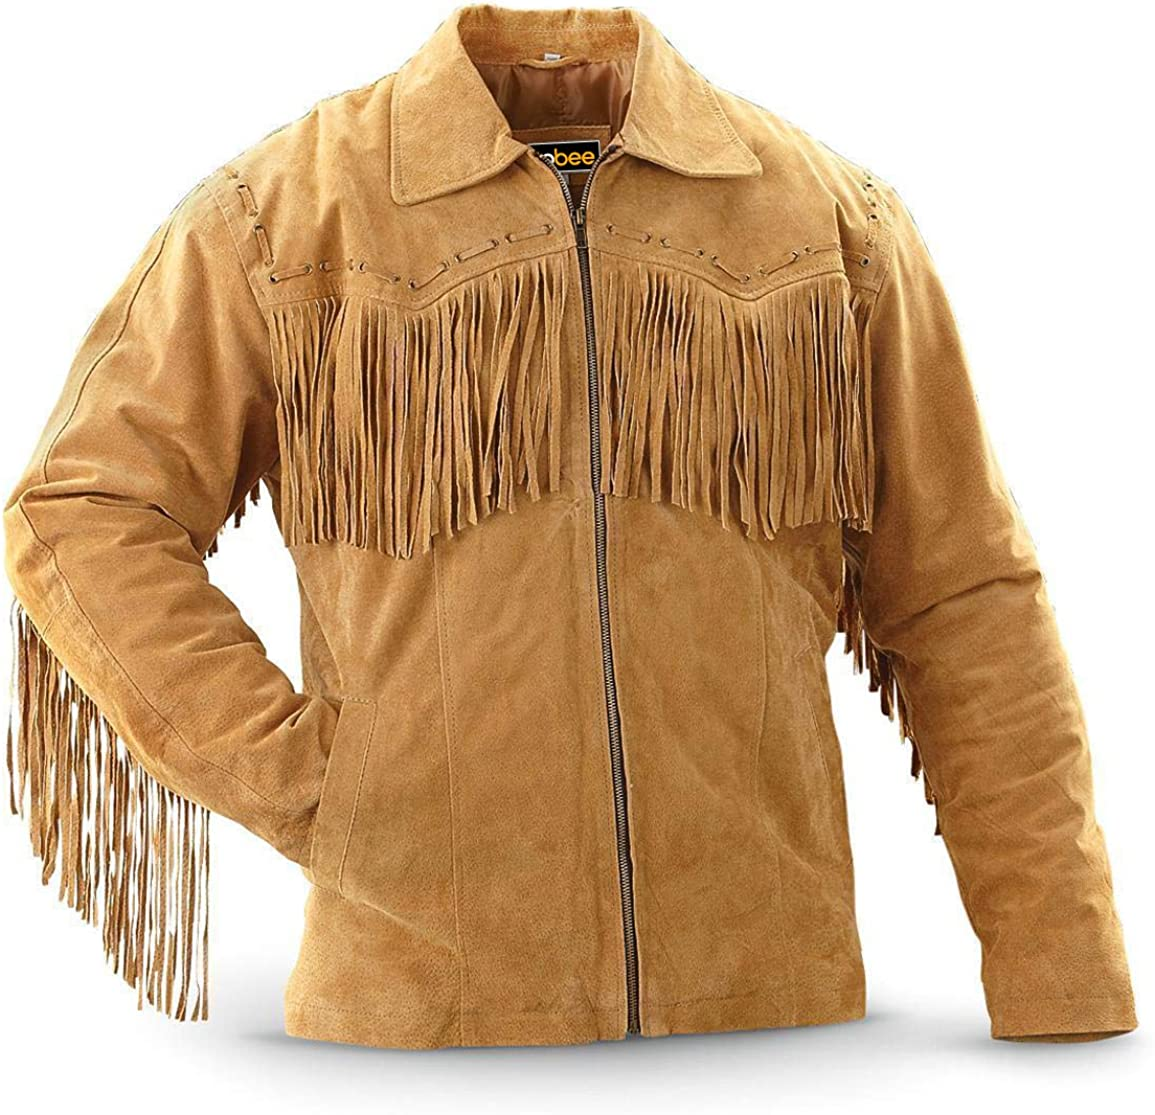 COCOBEE Mens Fringes Western Suede Leather Jacket Fashion Leather Jacket Slimfit Biker Jacket